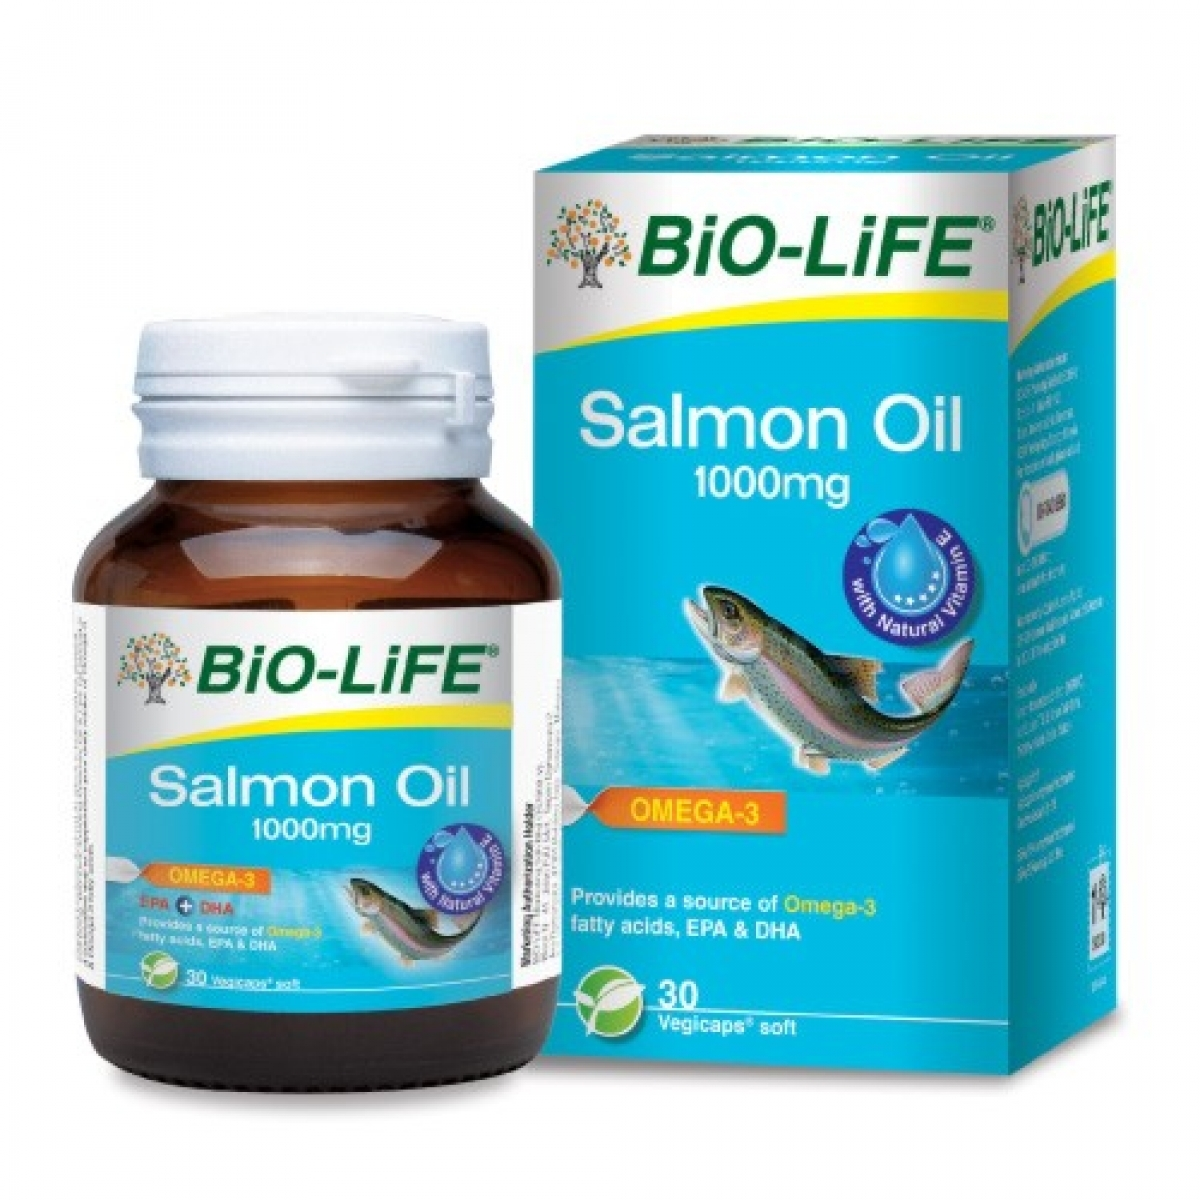 BiO-LiFE Salmon Oil 1000mg